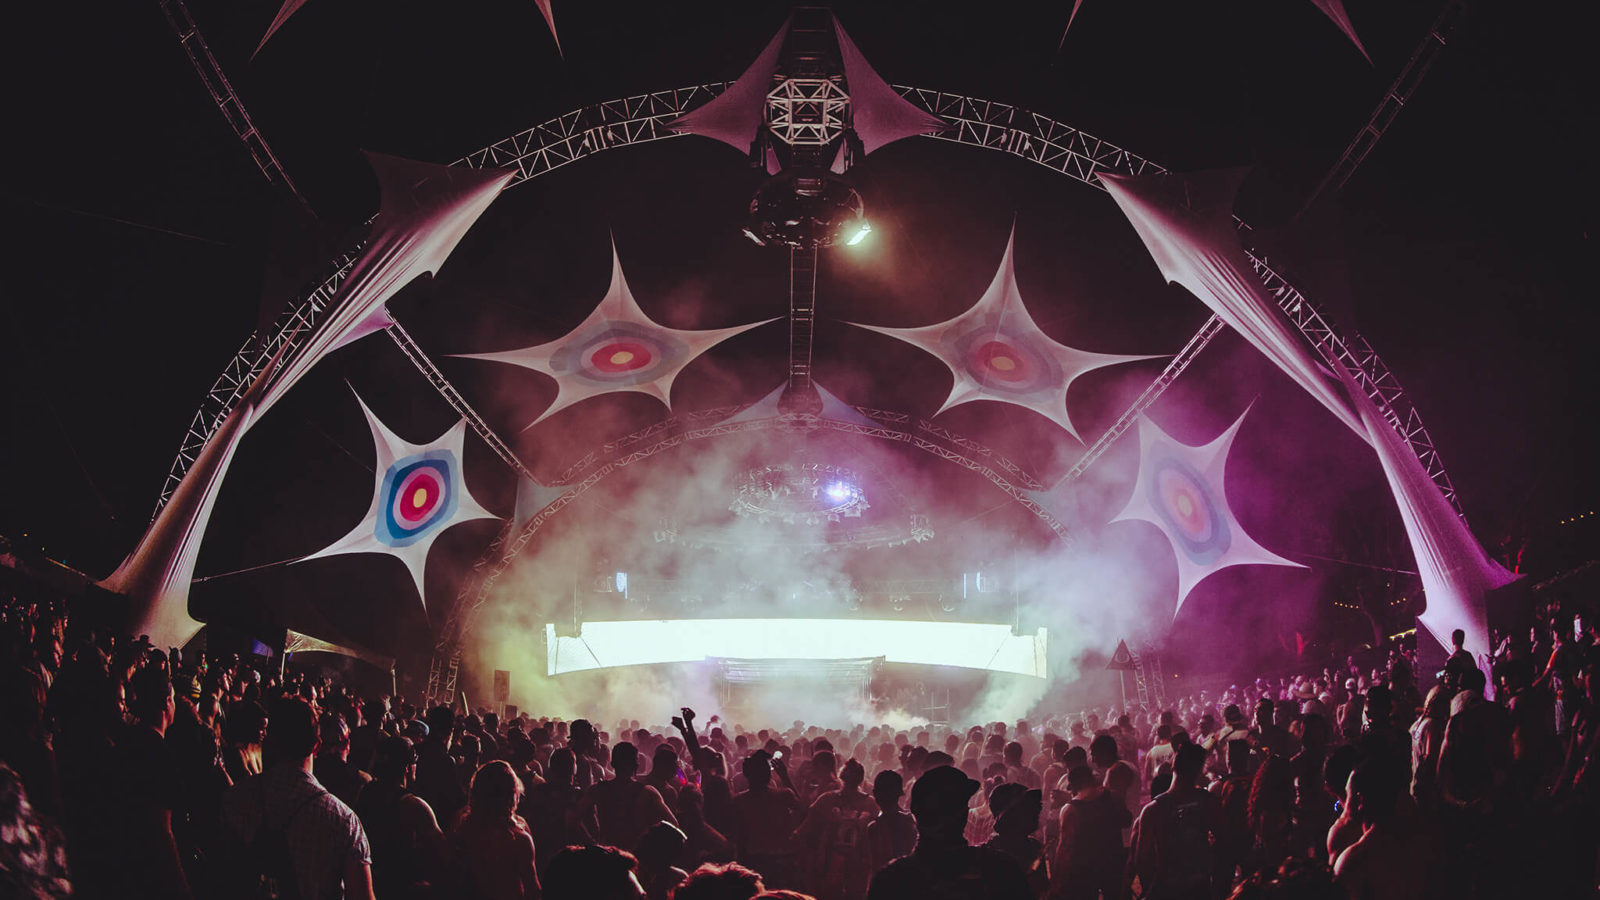 stage production at sunset music festival